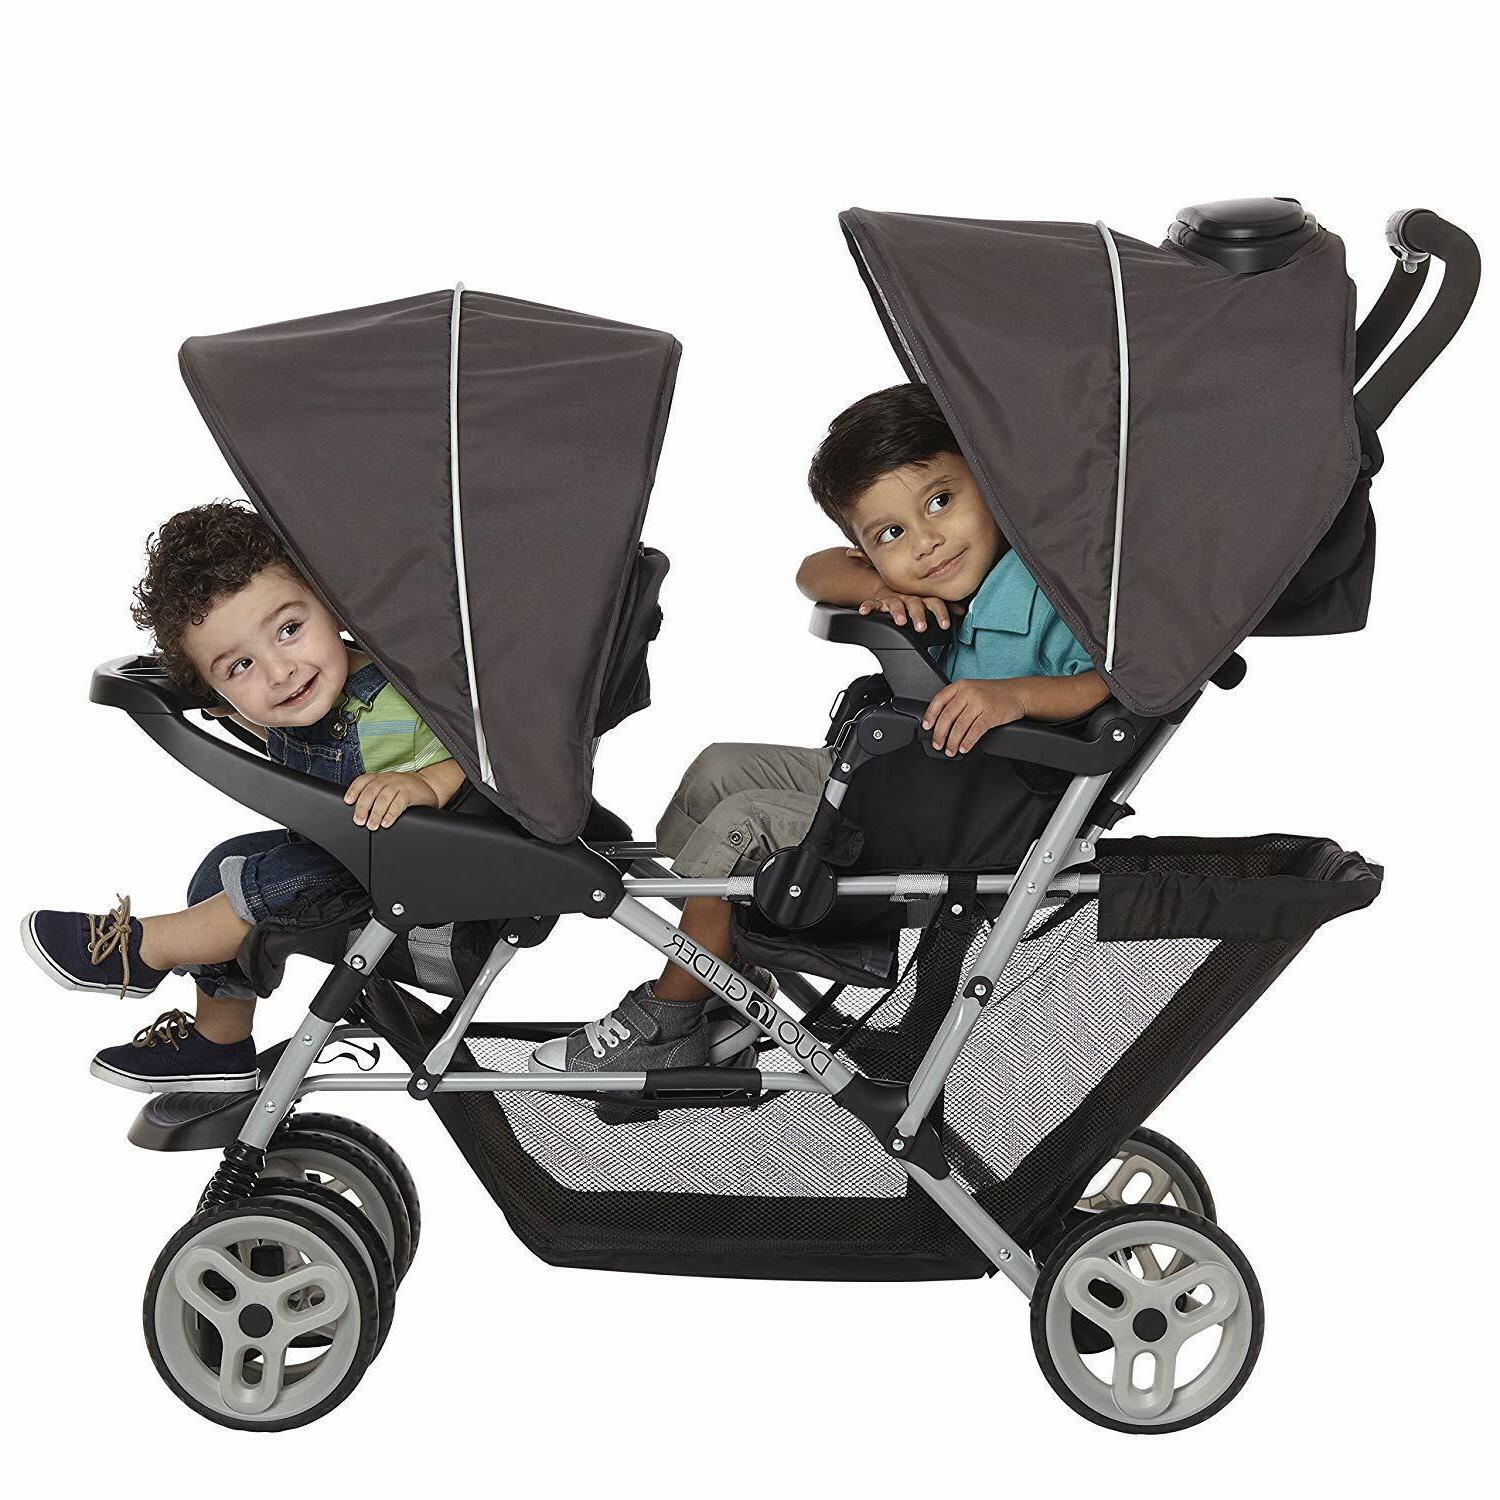 Graco Baby Infant Double Stroller with Seating